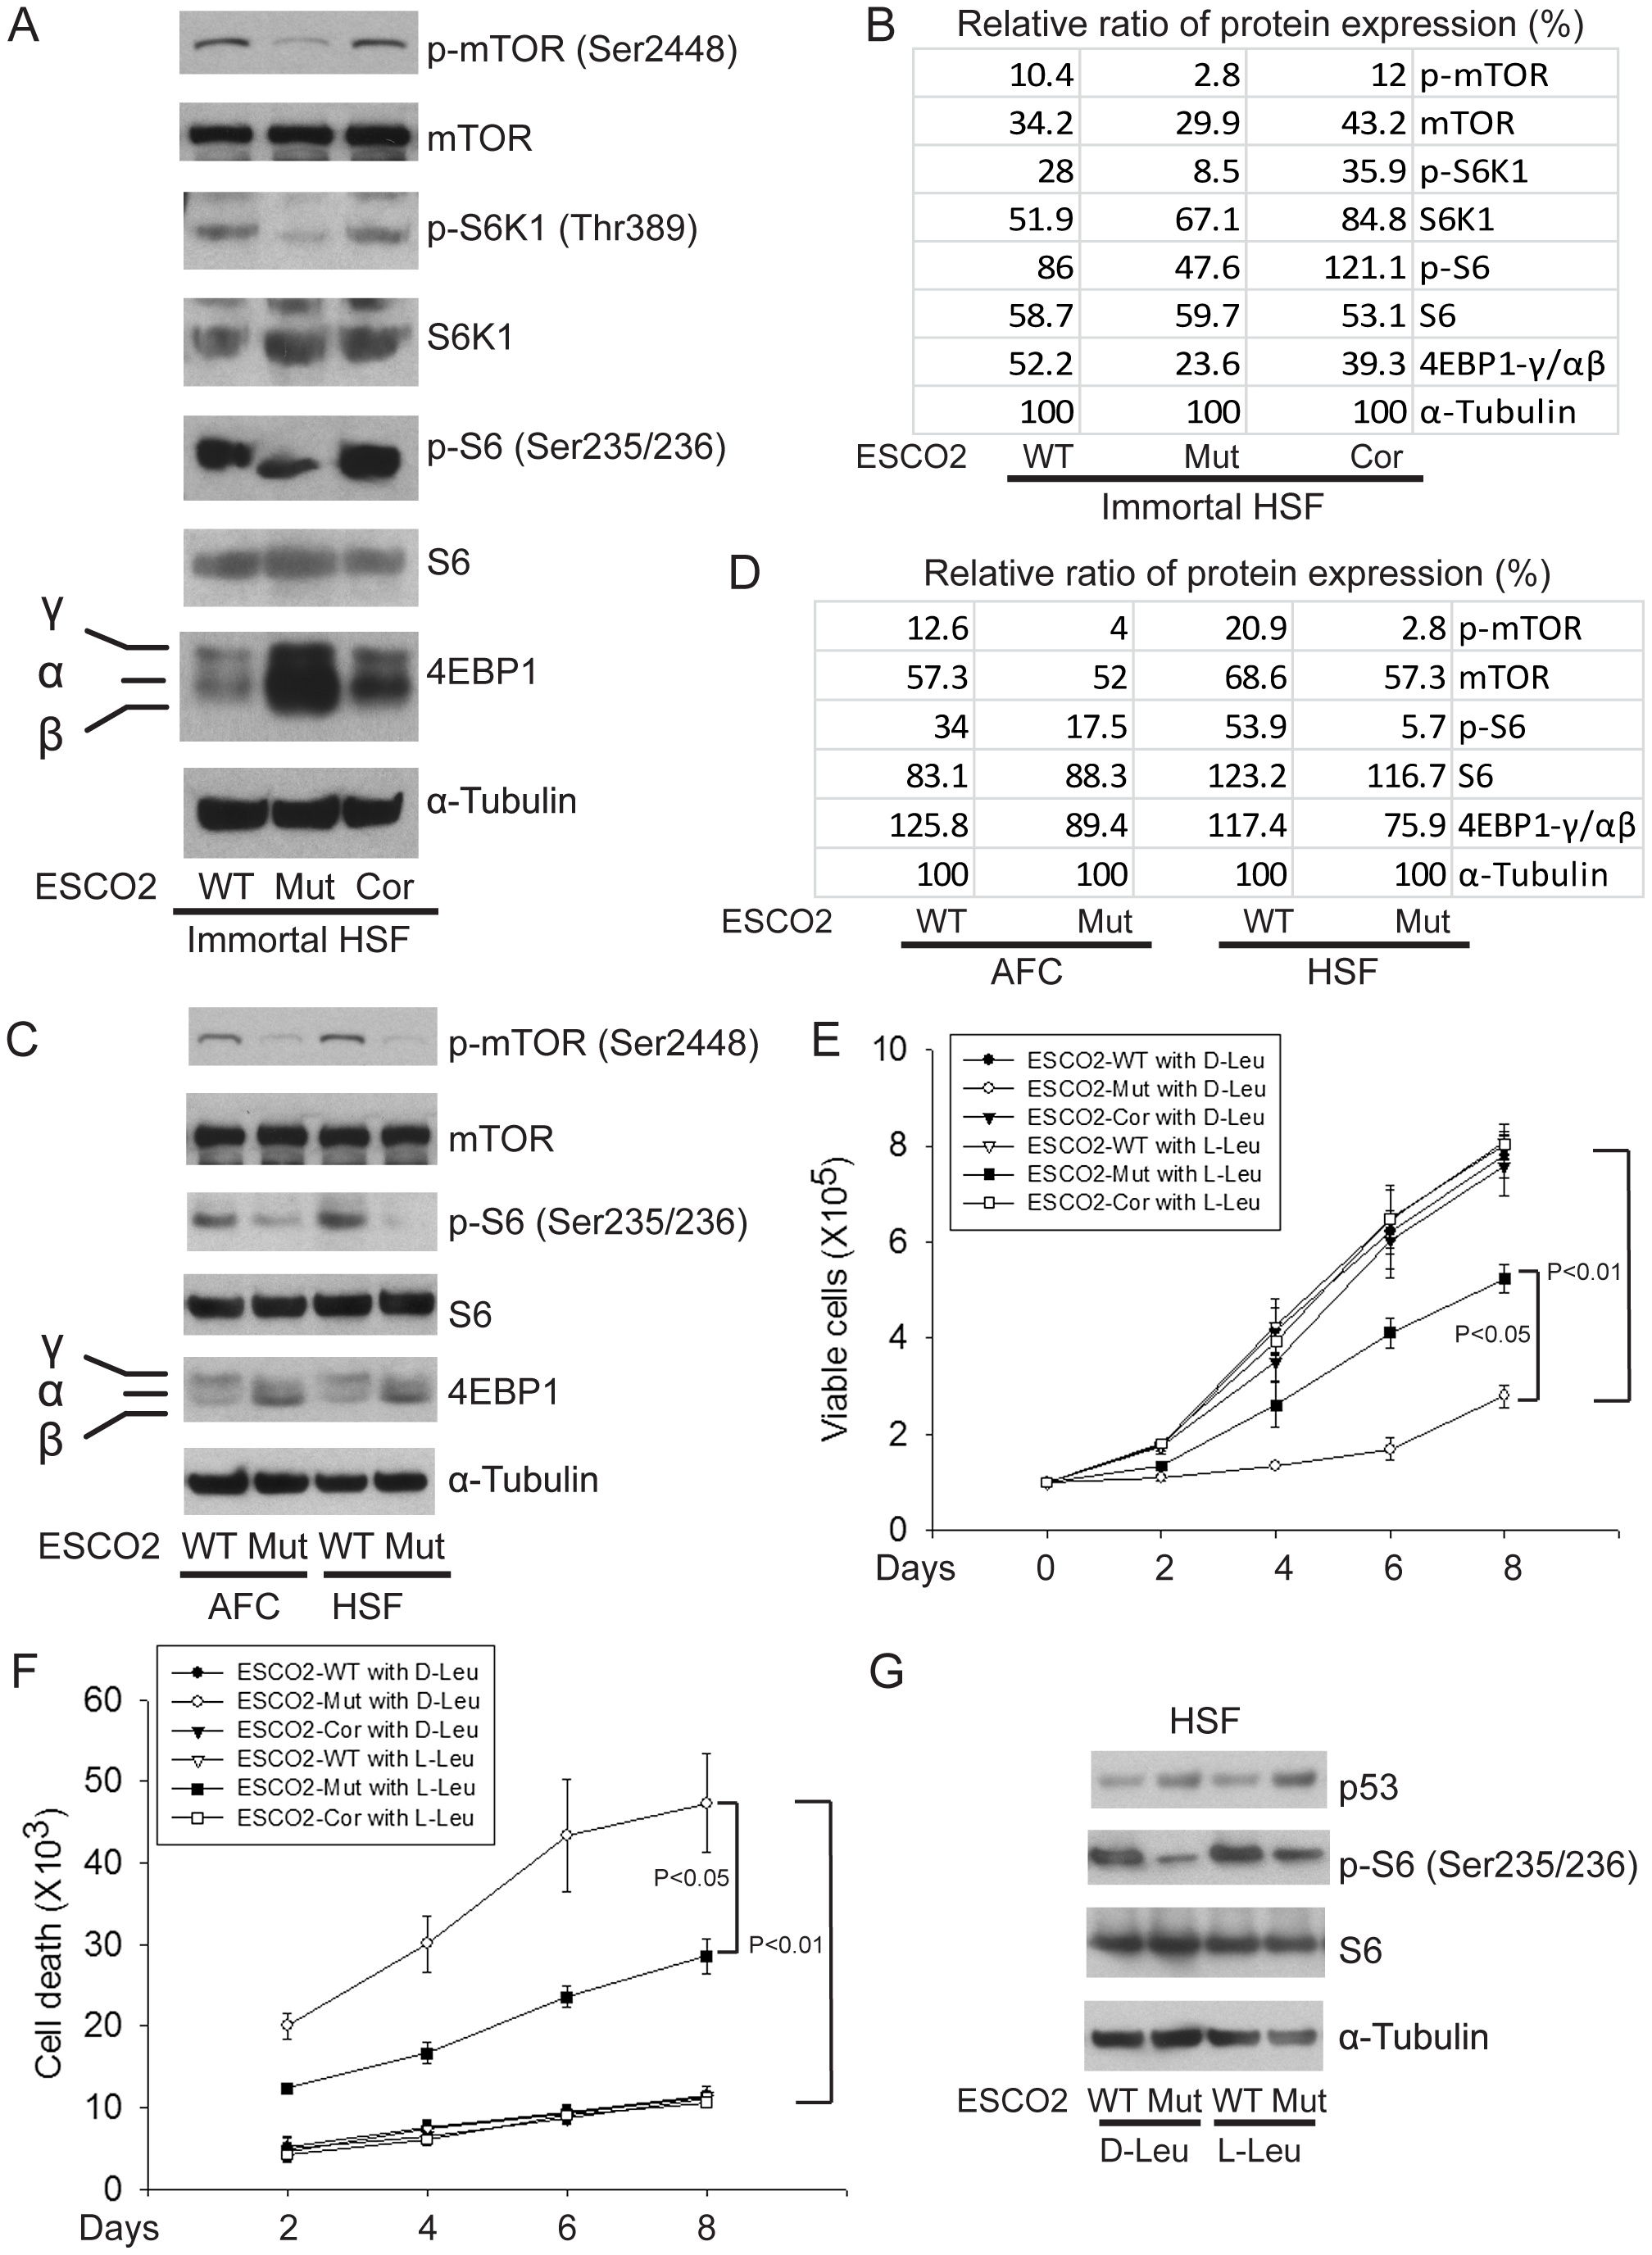 ESCO2 mutation is associated with mTOR inhibition in RBS cells.